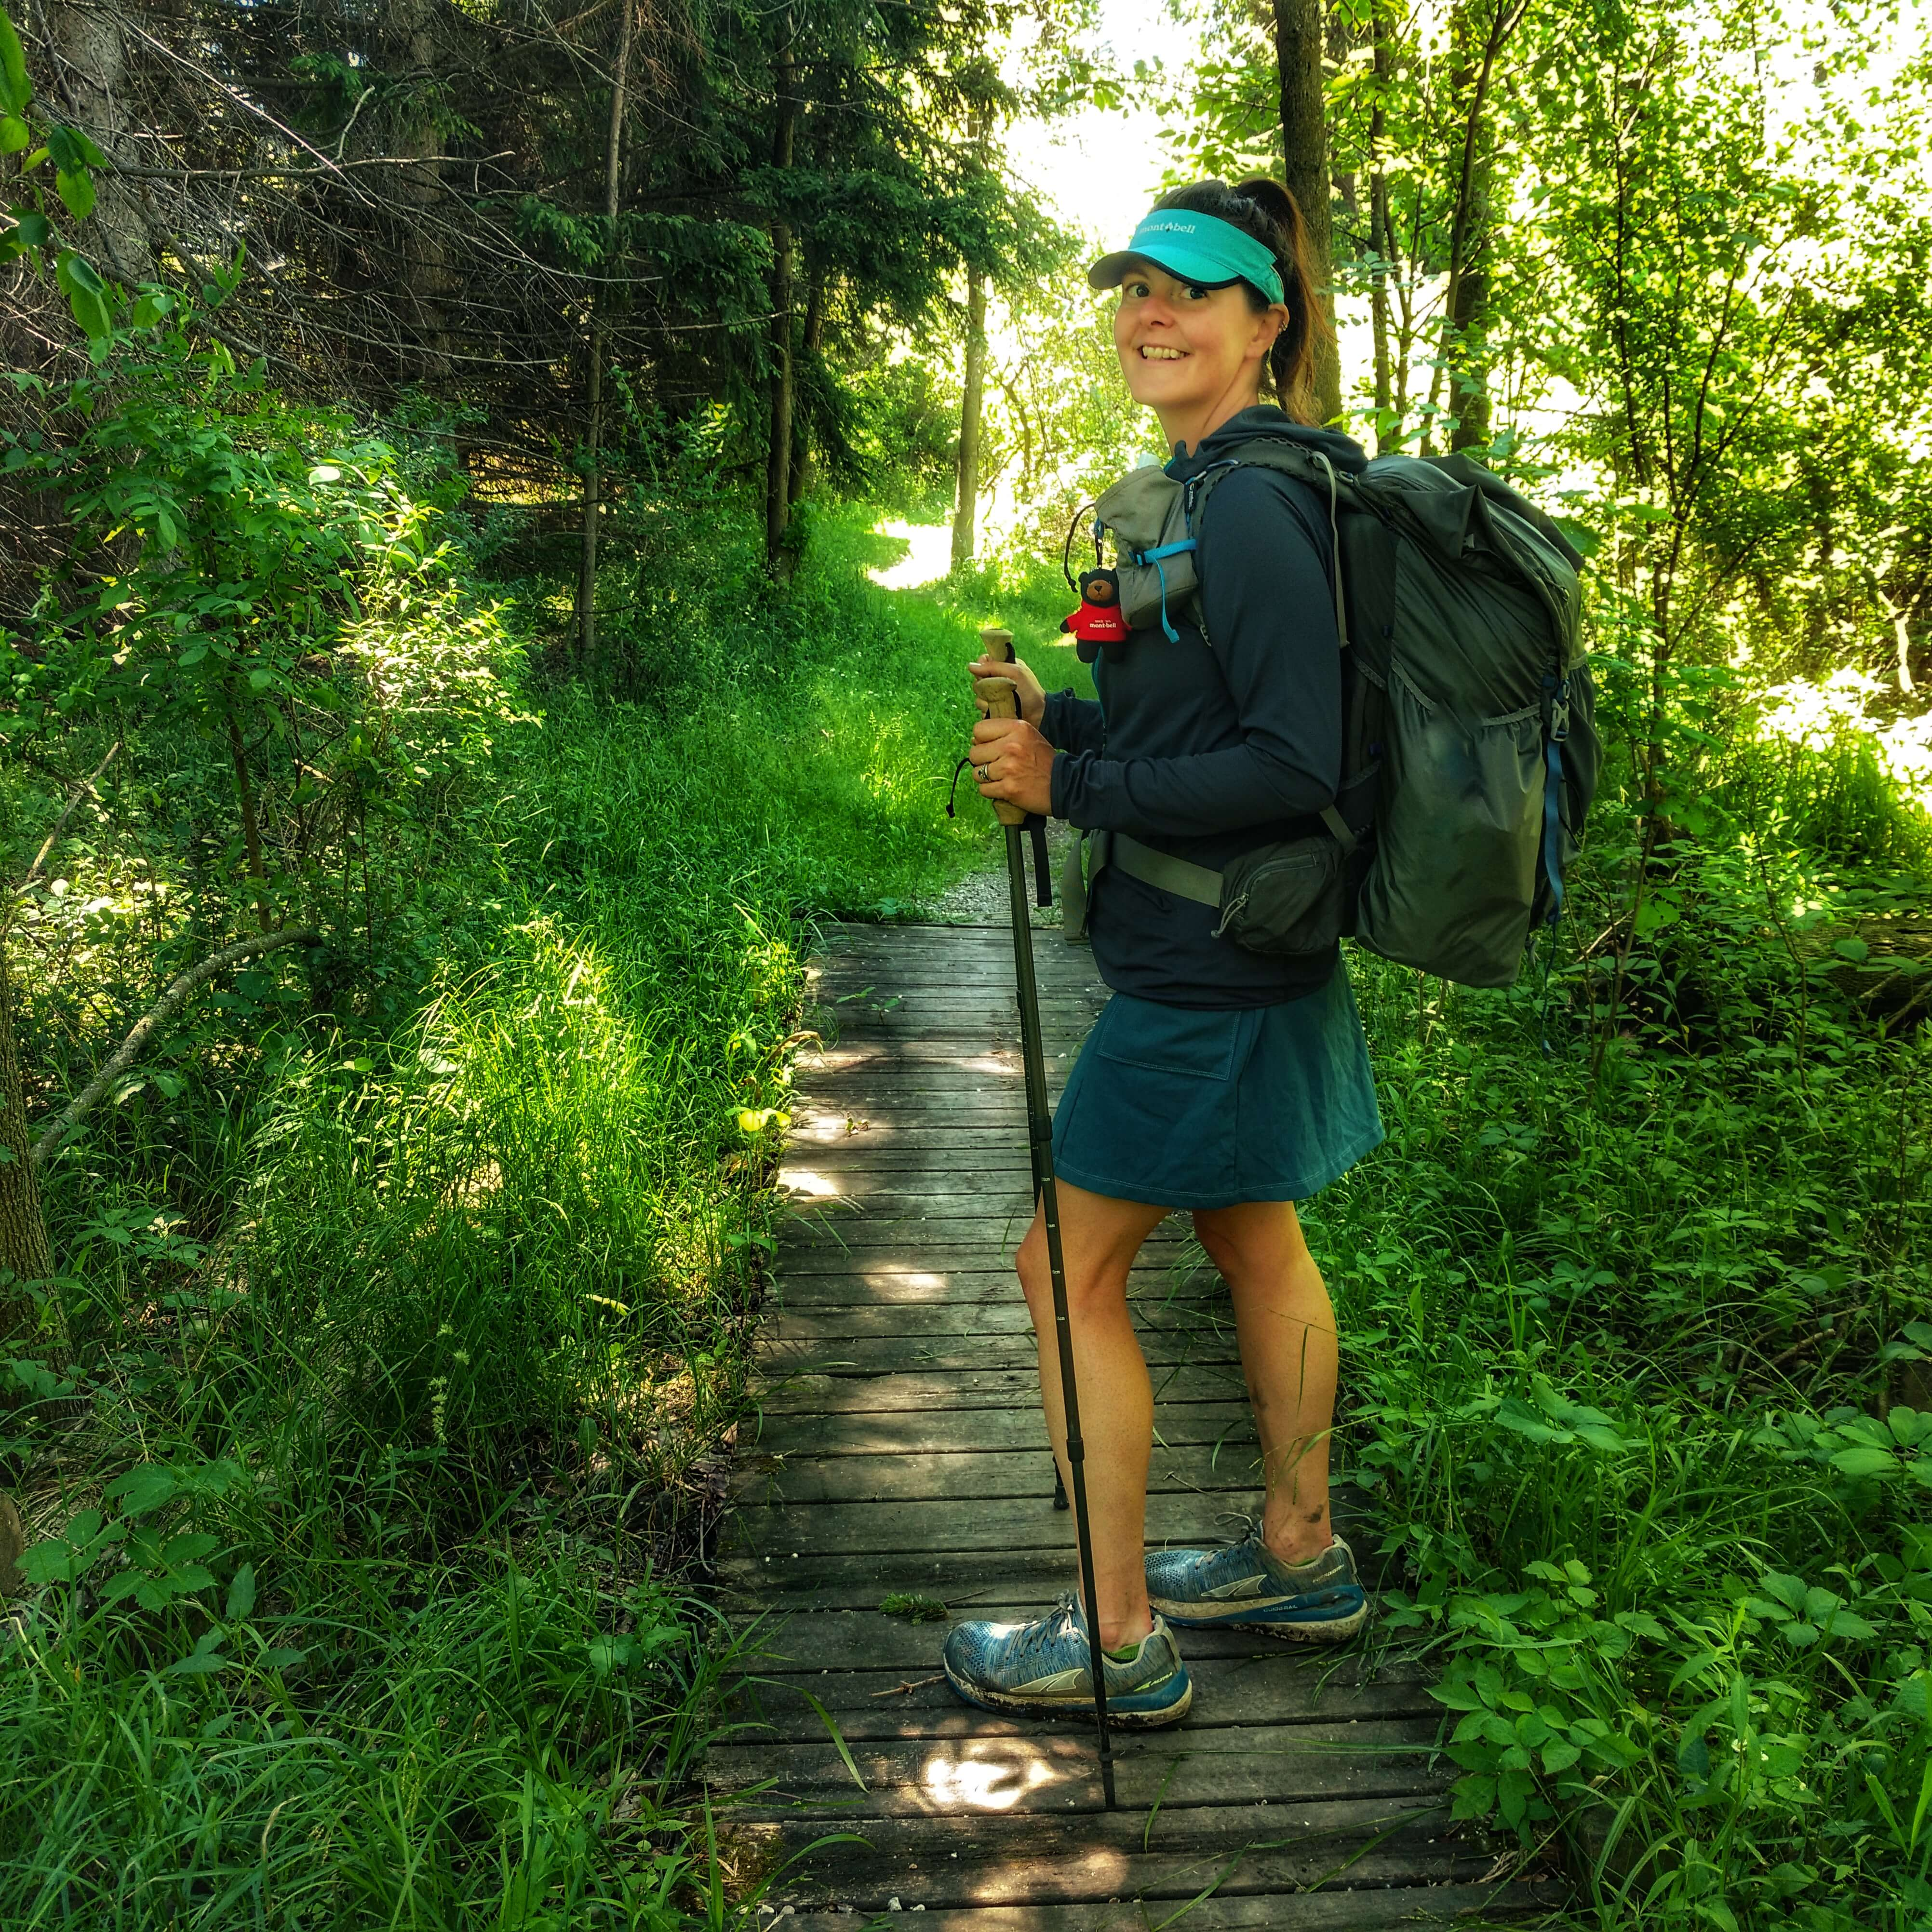 A picture of a woman hiking in green forest